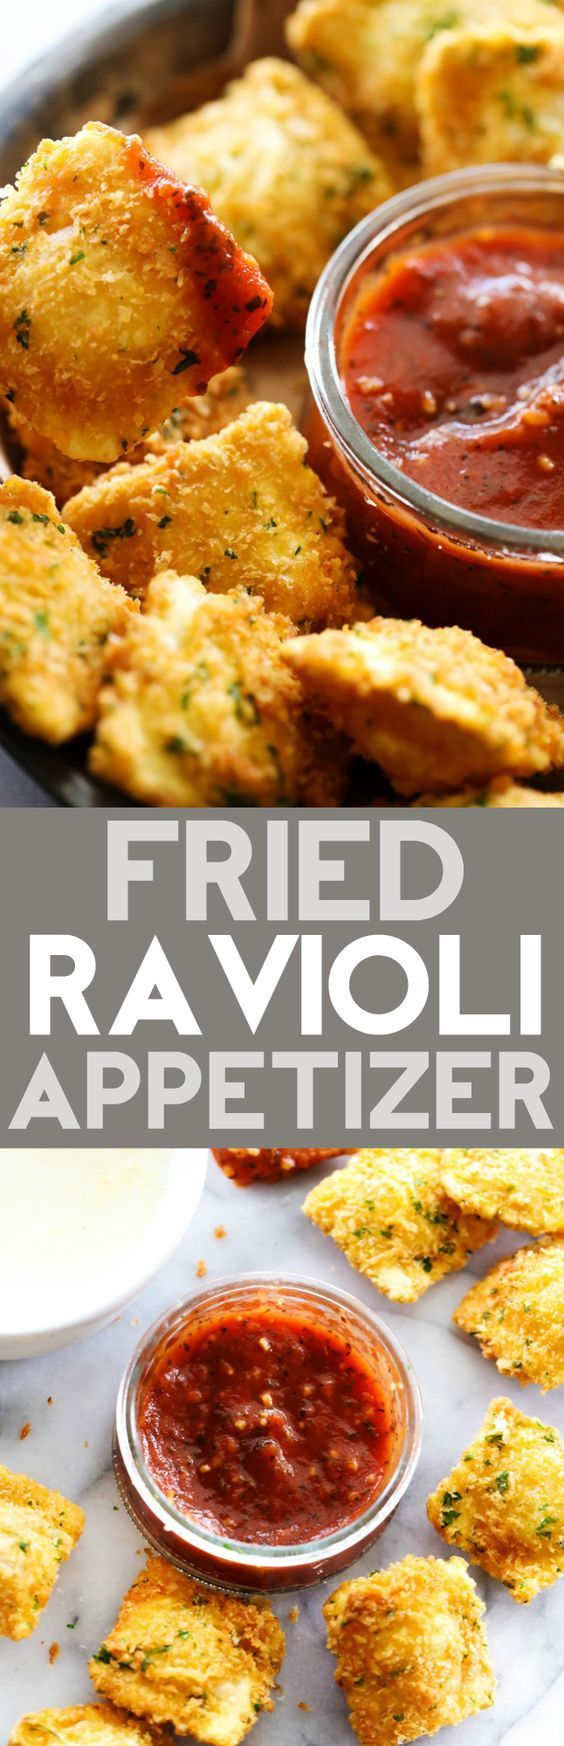 This Fried Ravioli Appetizer is out of this world! Crispy golden ravioli seasoned to perfection! Dip in marinara and Alfredo and you have one out of this world appetizer!